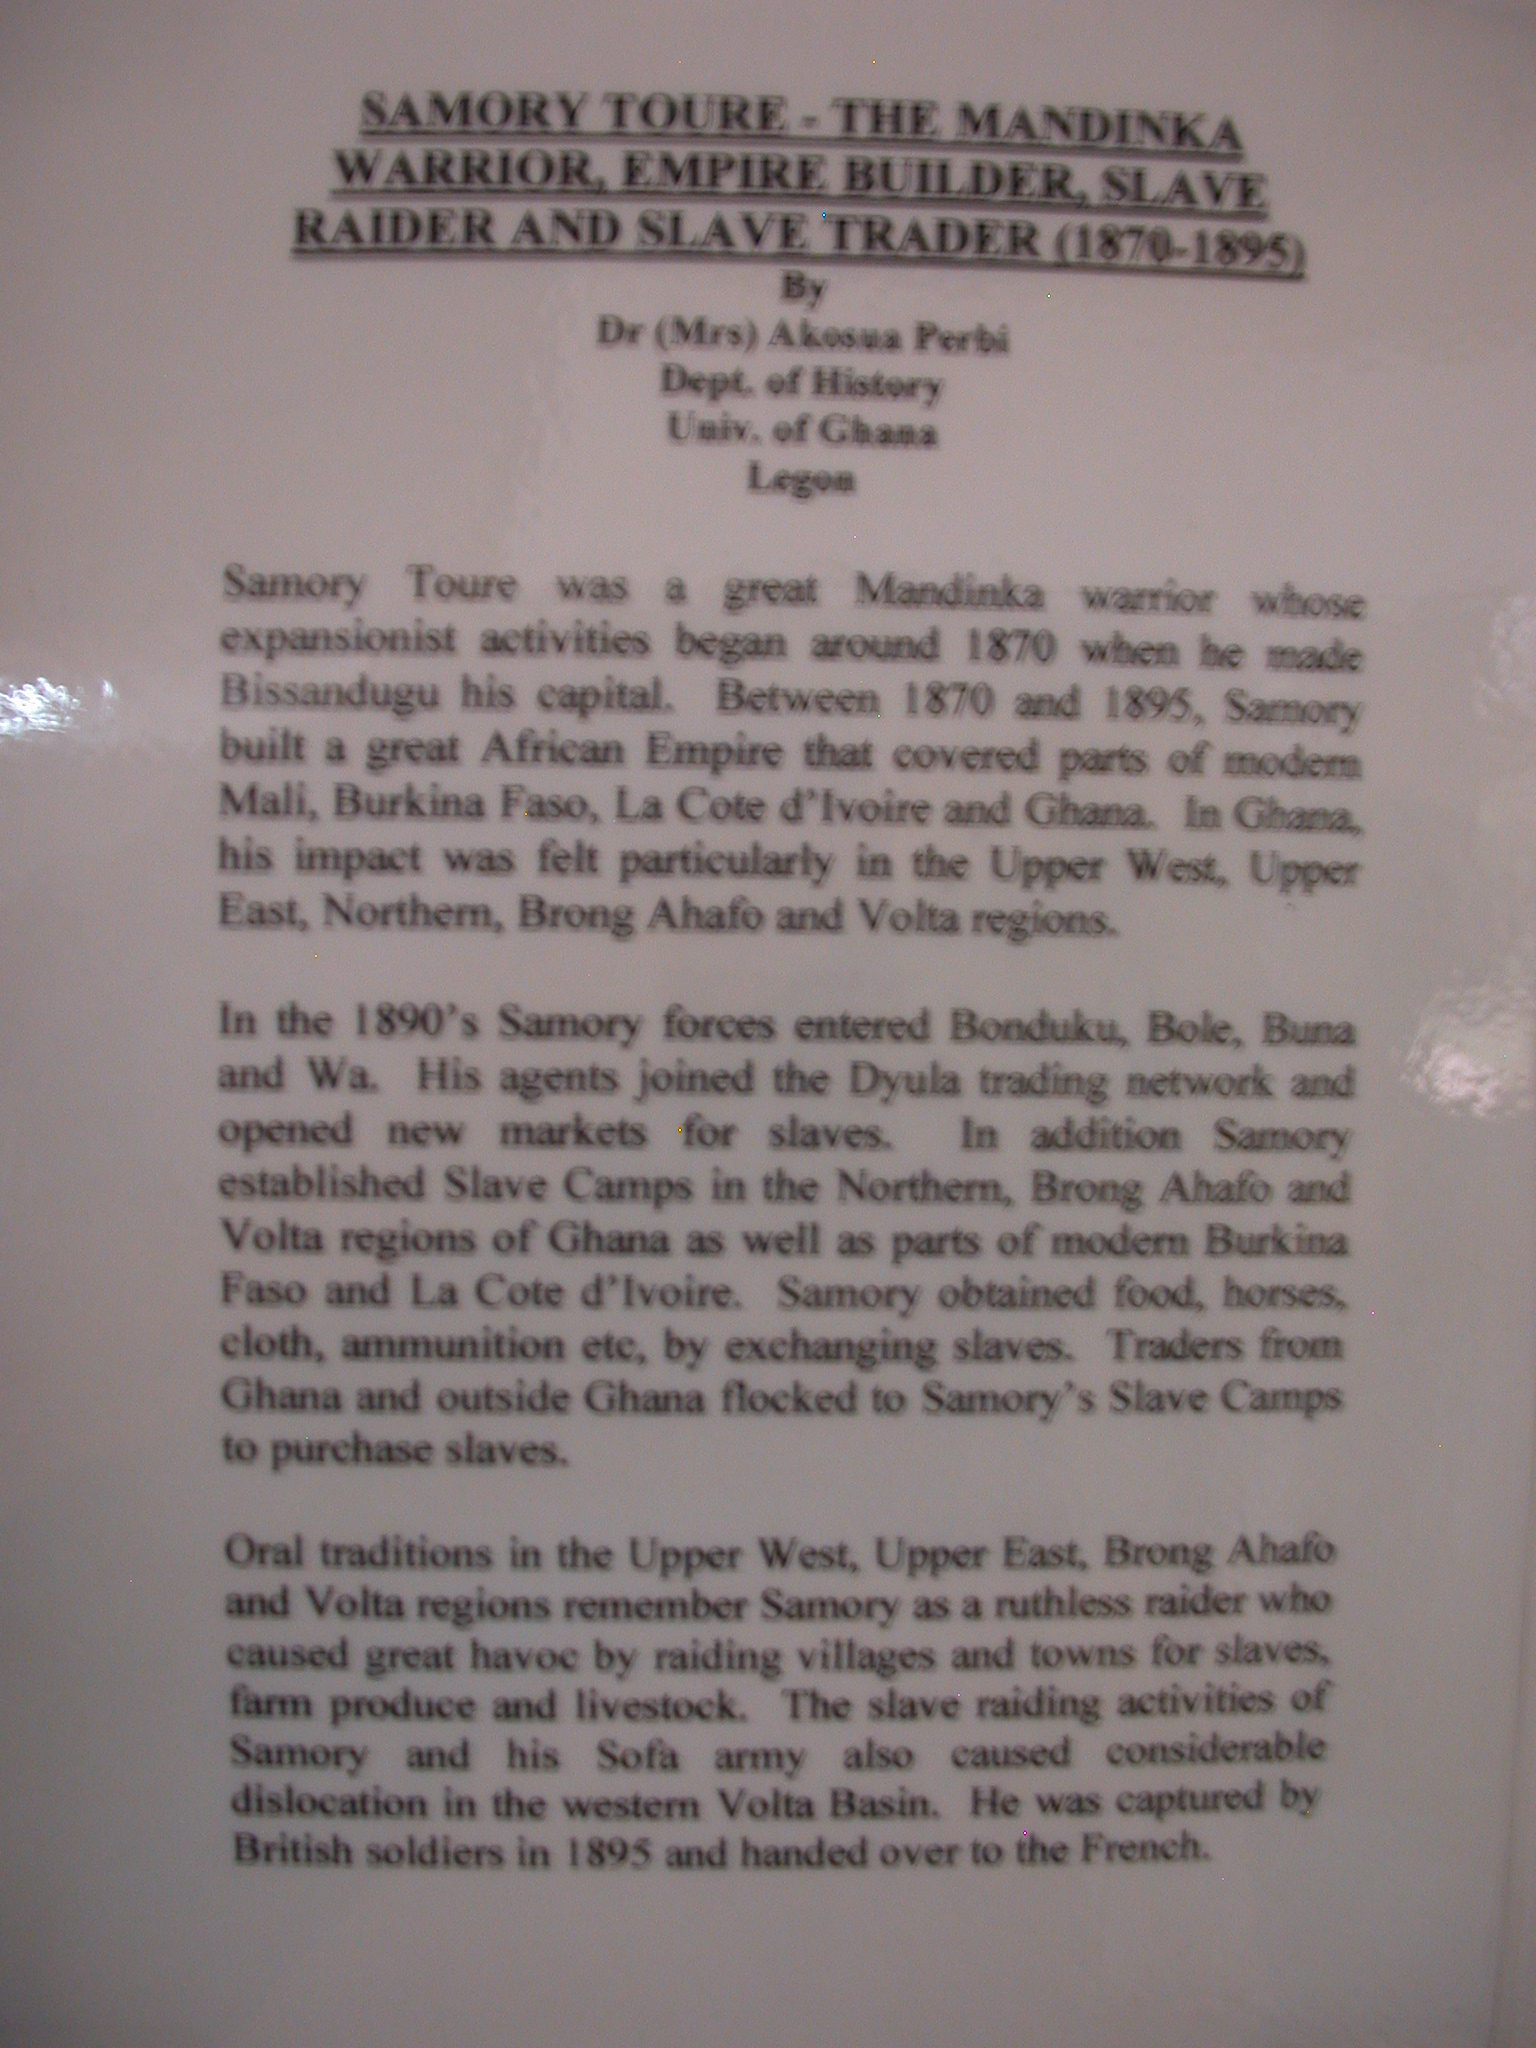 Label for Picture of Slave Raider Samory Toure, National Museum, Accra, Ghana